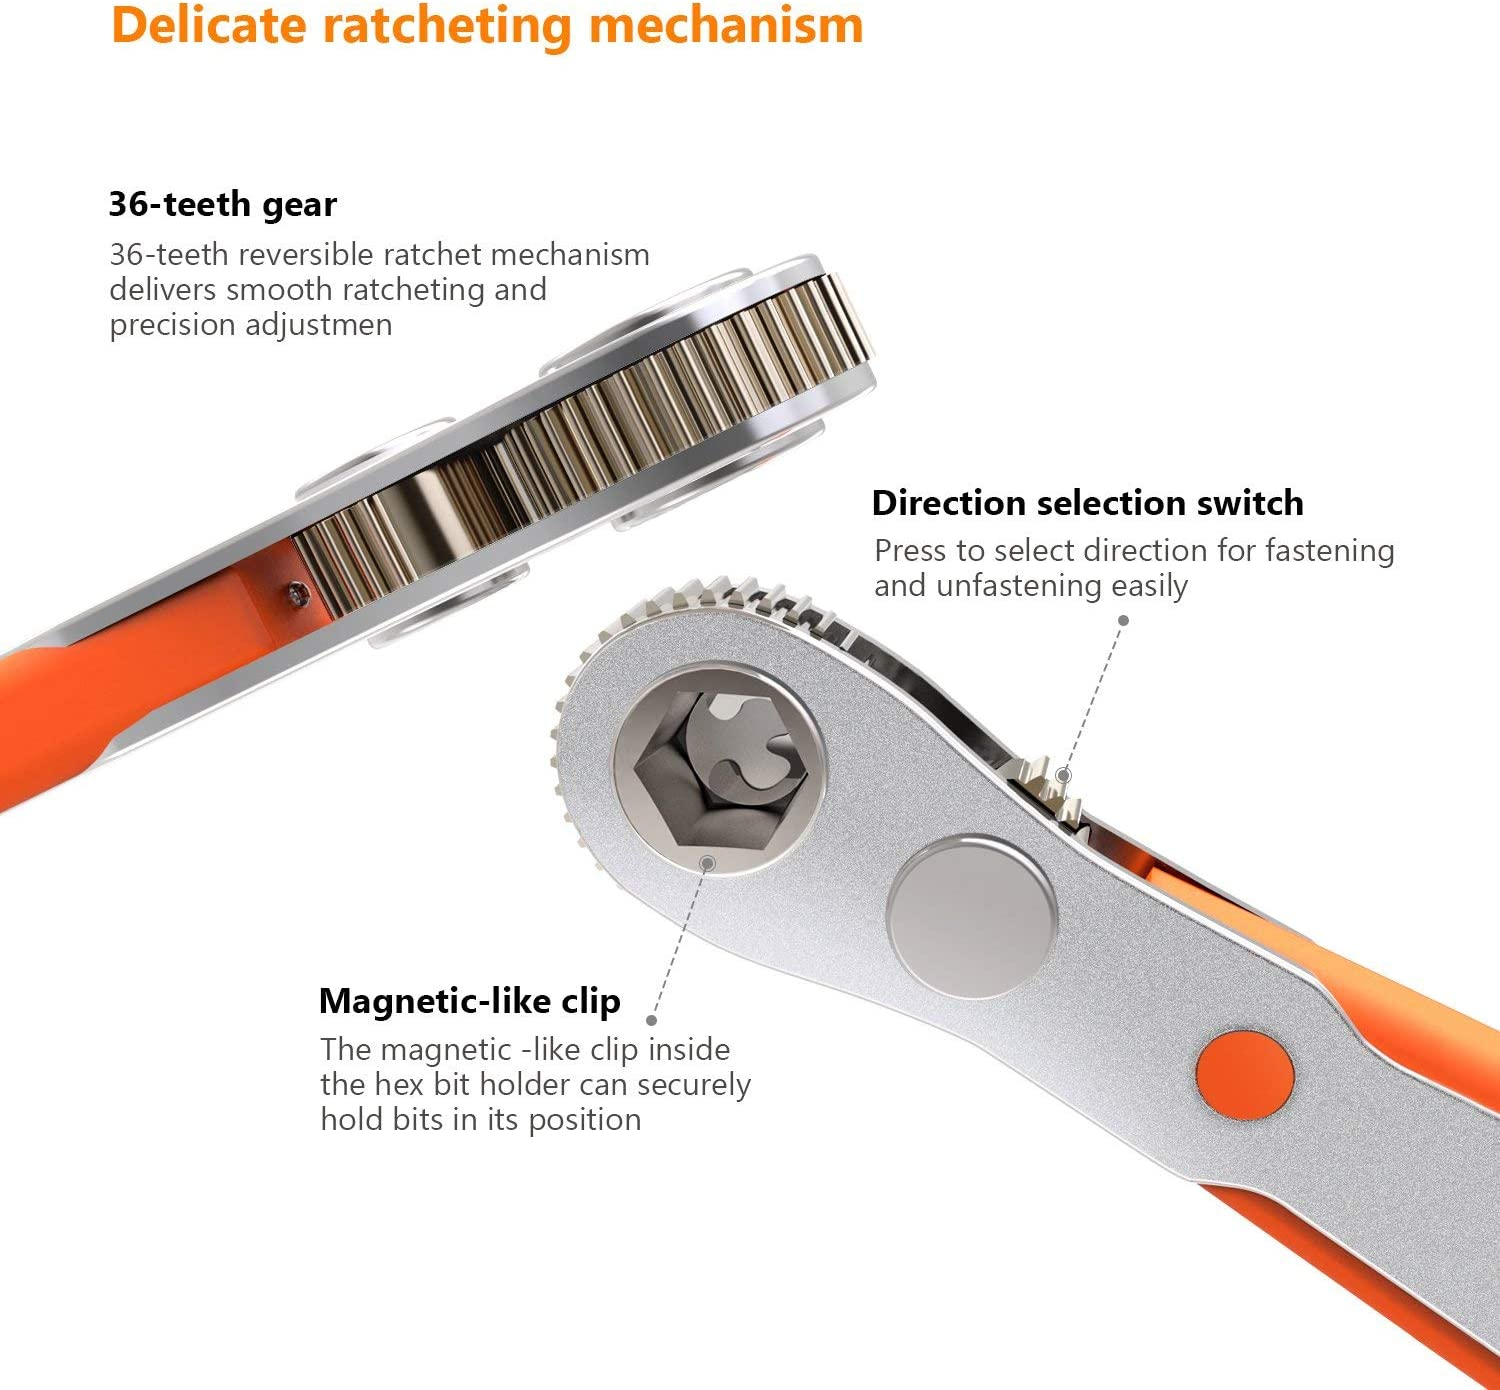 """17 Pcs Mini Ratchet Screwdriver with 1//4/"""" Drive HRSB1A Tacklife Ratchet Wrench and Bits 36-Tooth Close Quarter"""